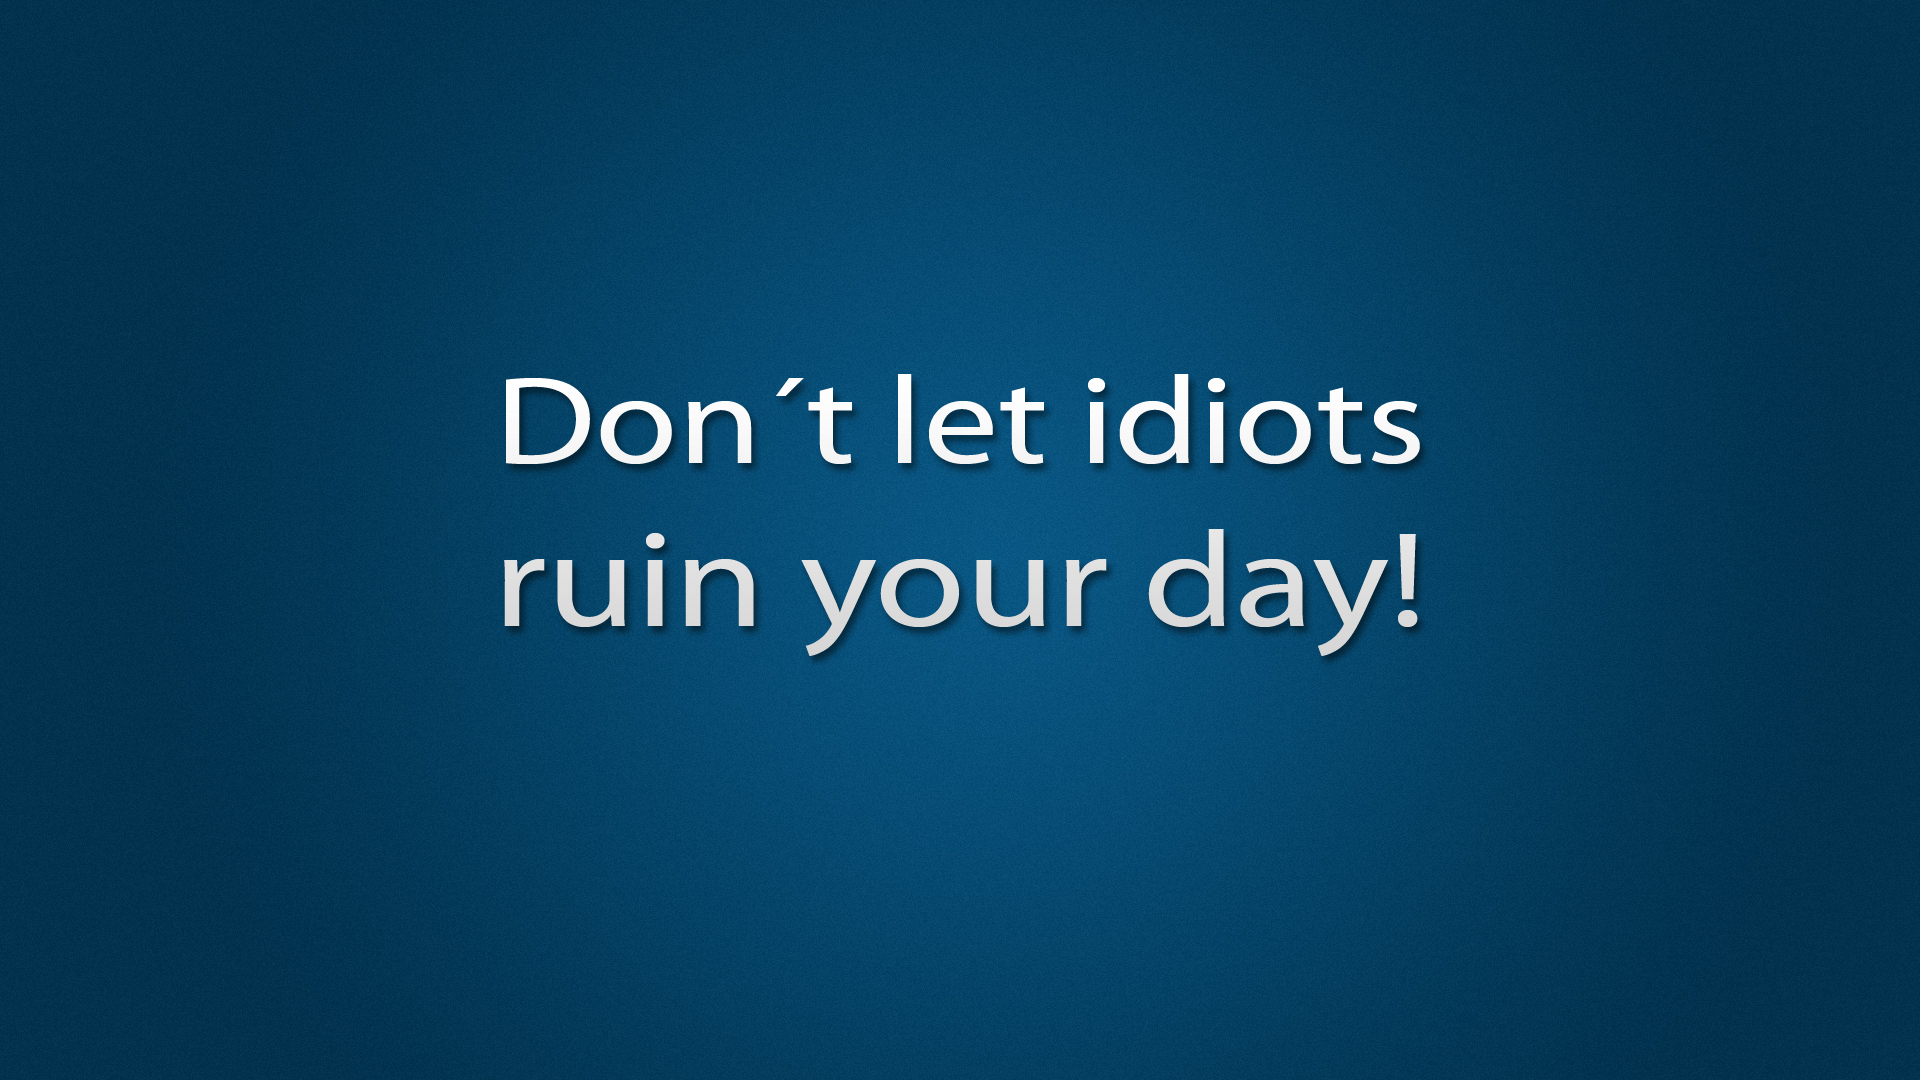 Dont Let Idiots Ruin Your Day Full HD Wallpaper And